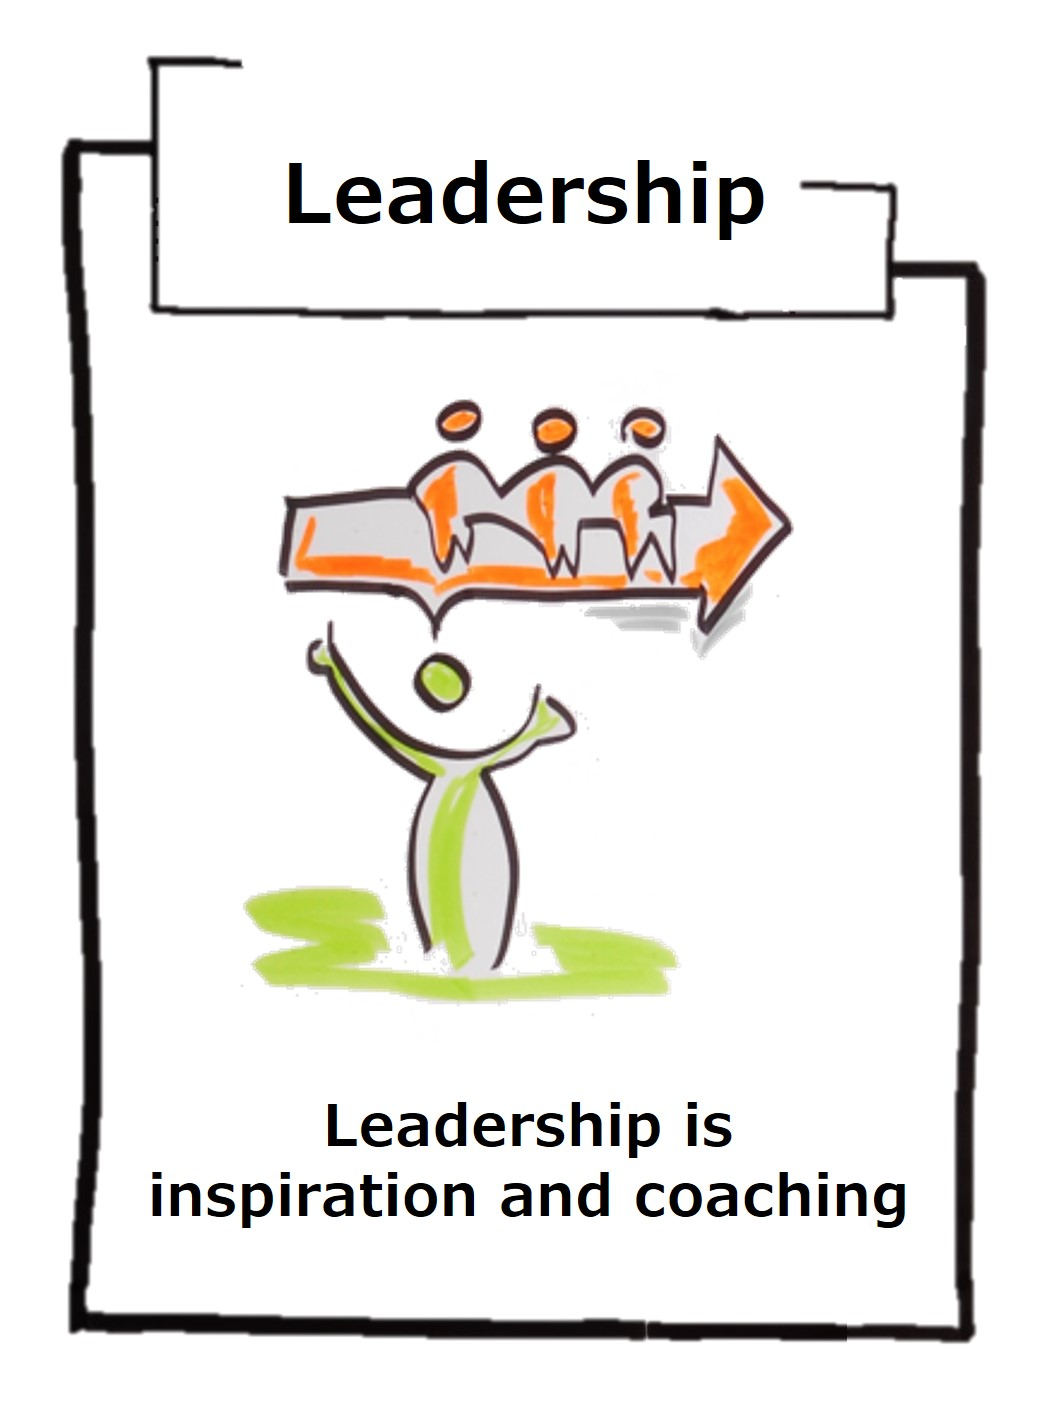 Leadership is a big challenge. It is often a balancing act between your own requirements and the expectations of the employees